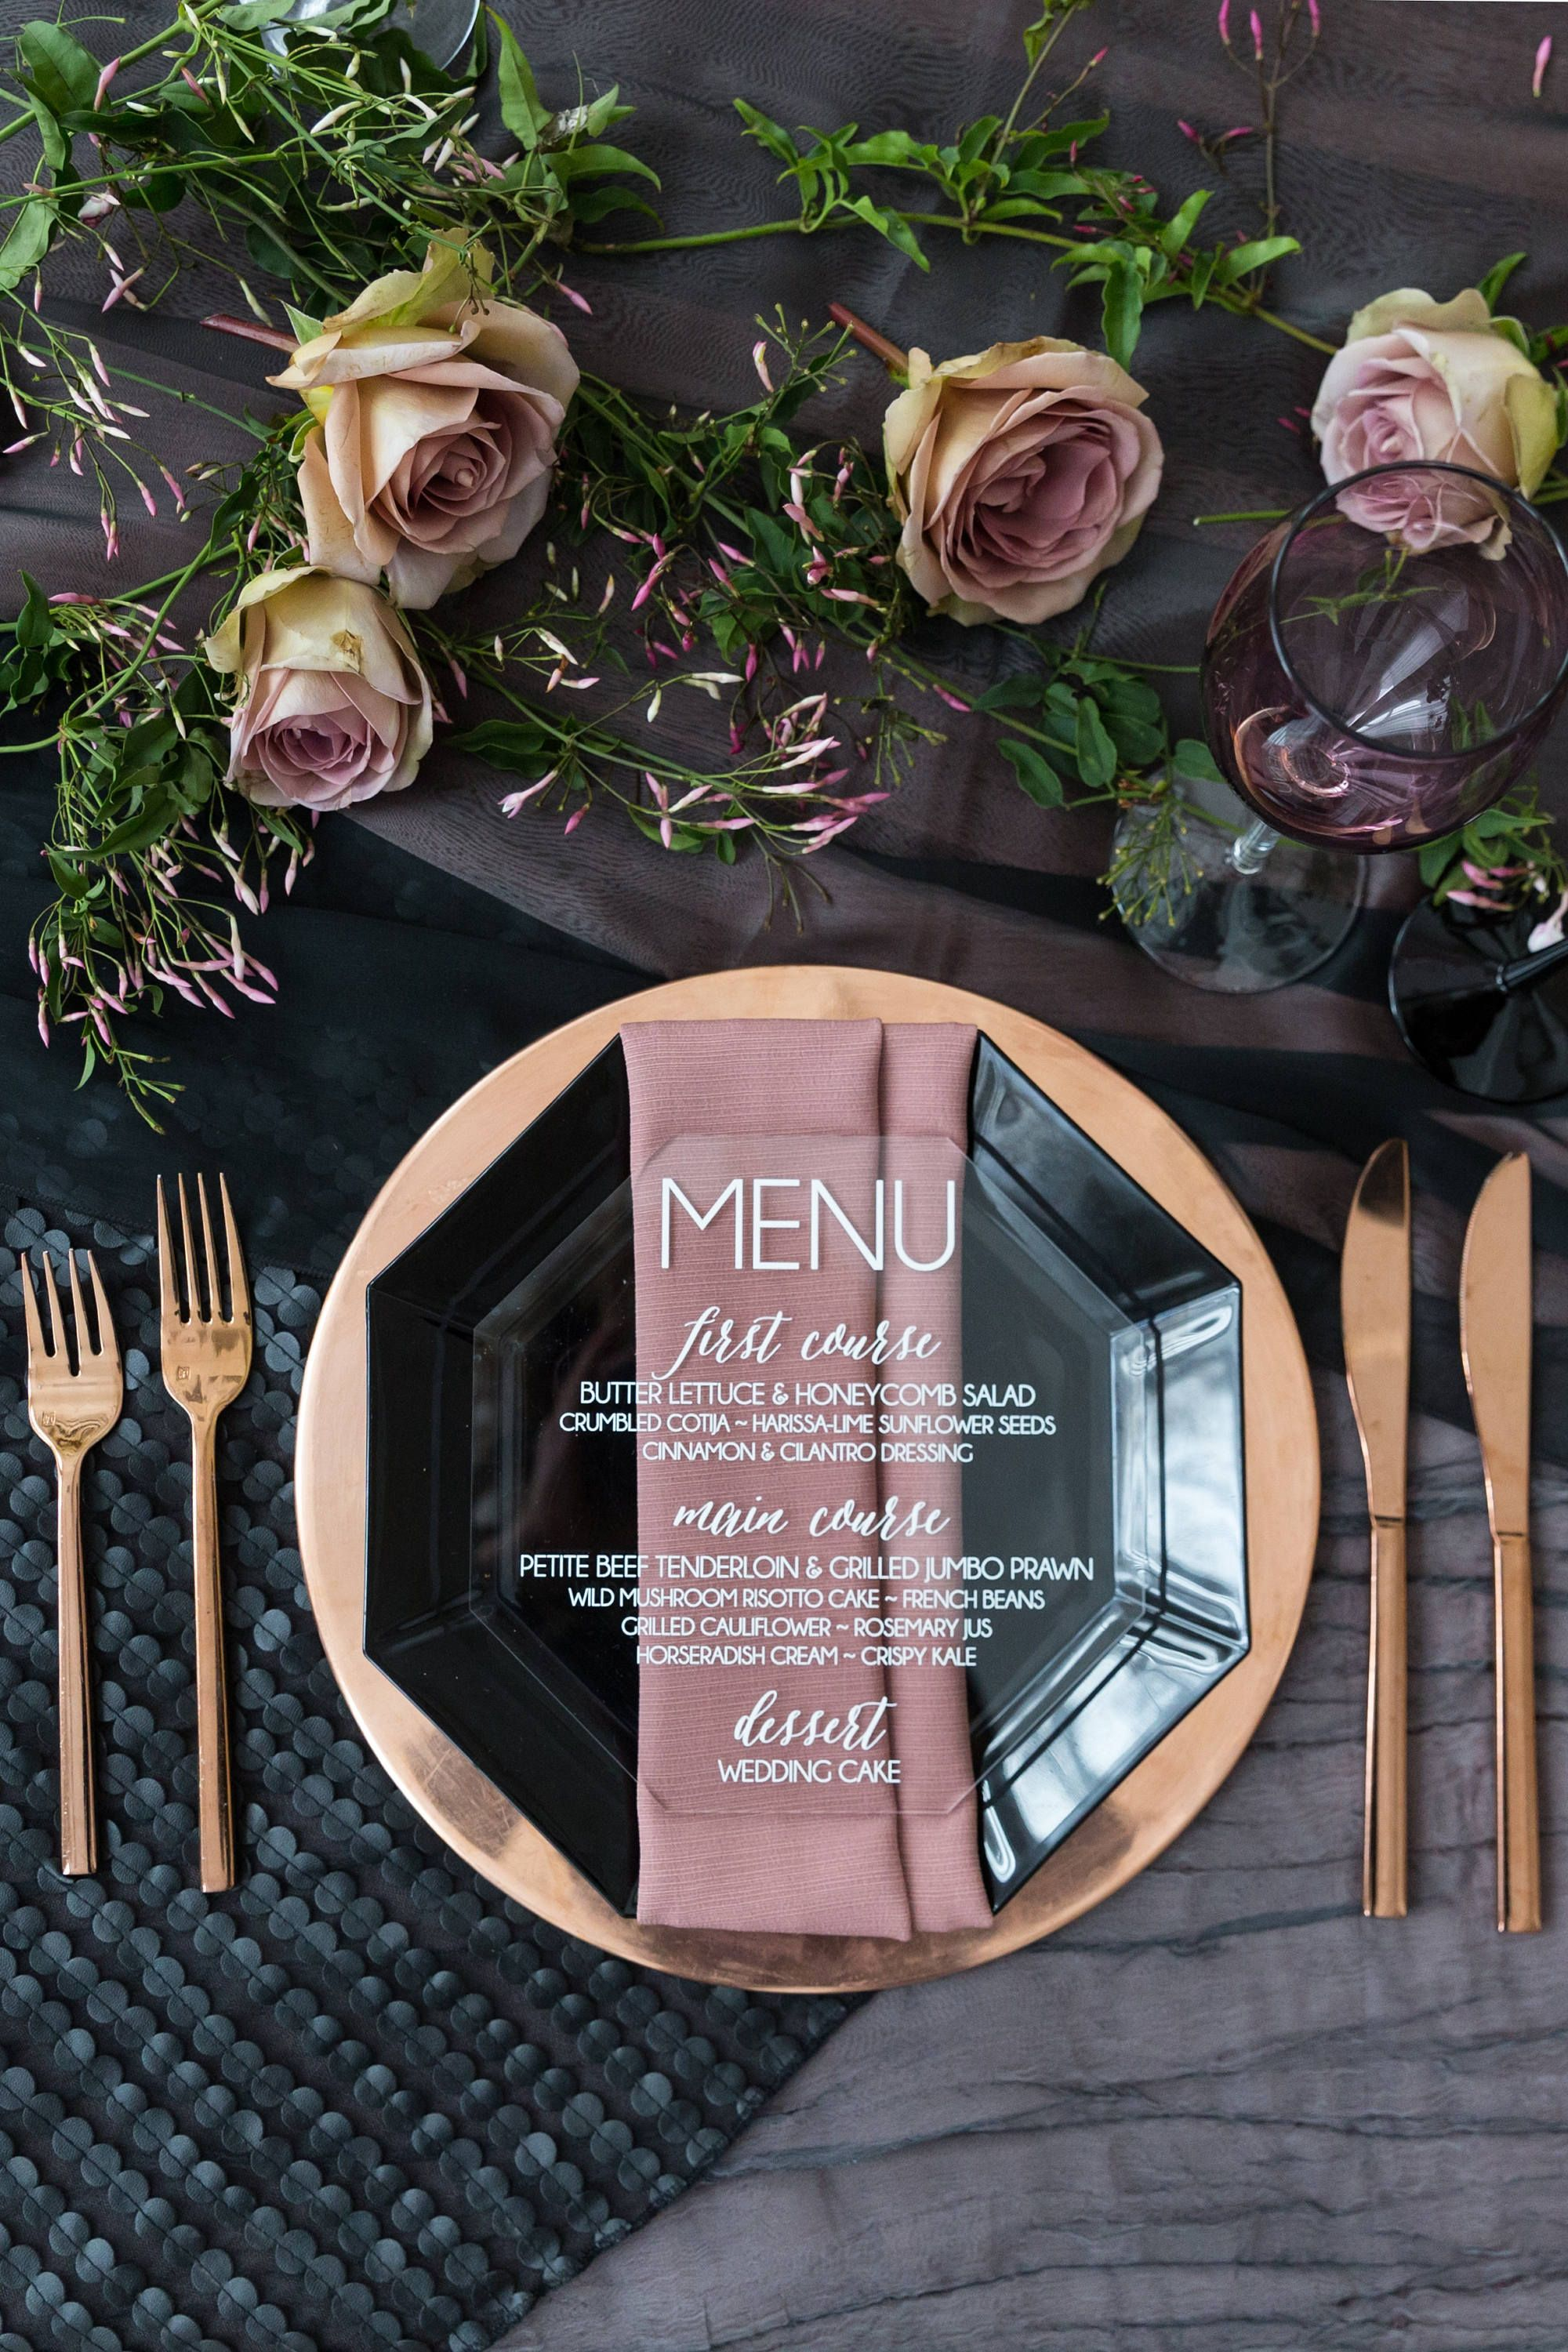 Acrylic Menu, acrylic wedding menus, lucite wedding, wedding menus, acrylic dinner menu, menus, acrylic wedding signs -in #weddingmenuideas